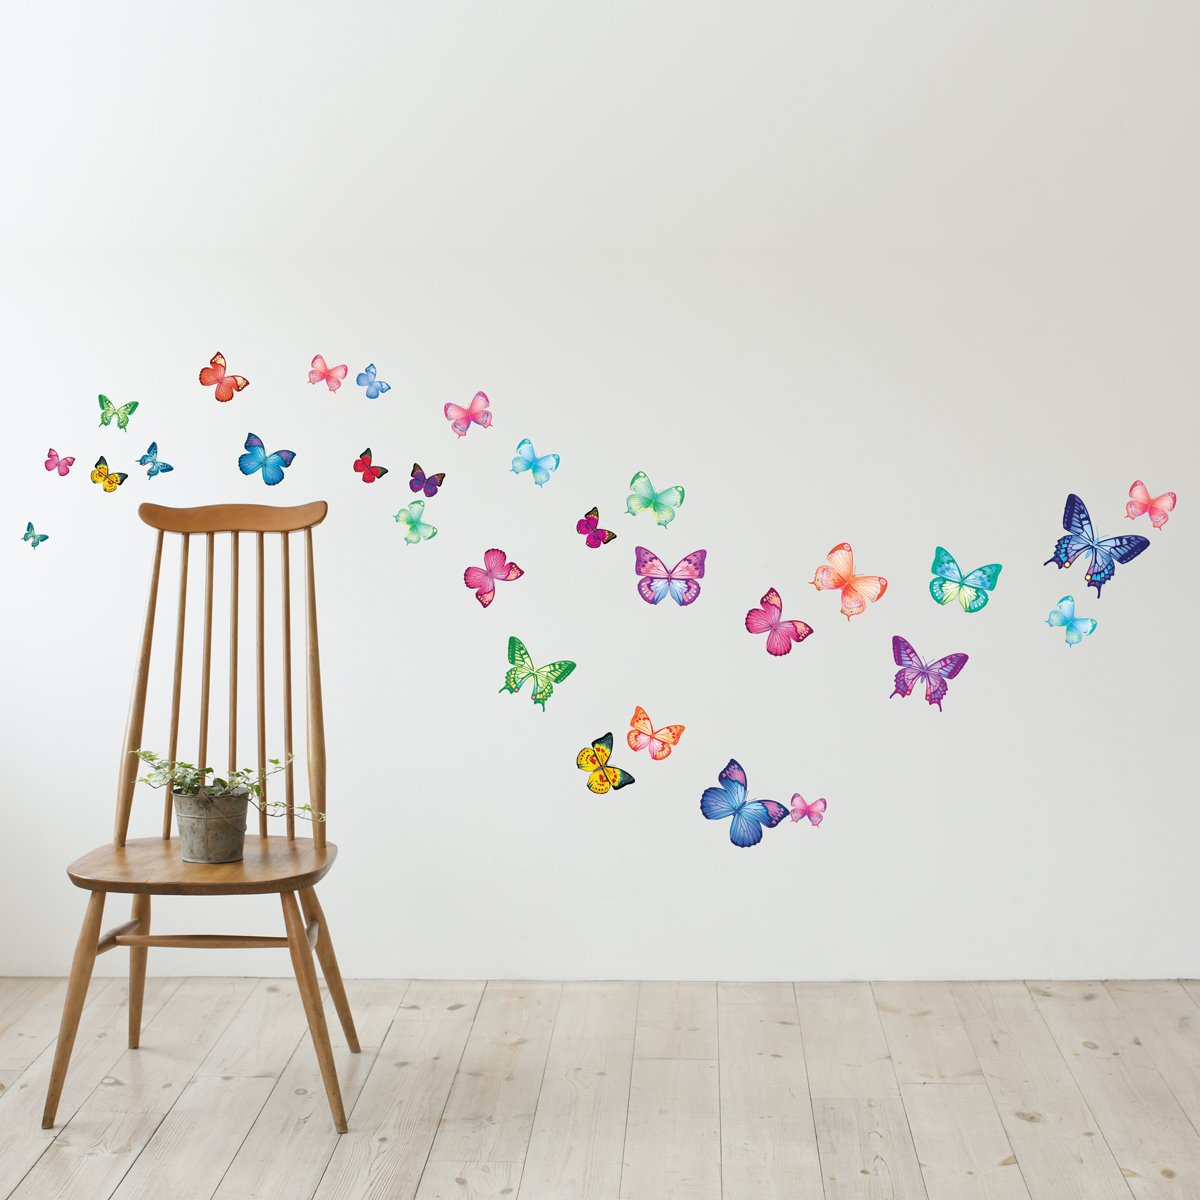 decowall dw 1302 30 vibrant butterflies kids wall stickers wall 30 vibrant butterflies kids wall stickers wall decals peel and stick removable wall stickers for kids nursery bedroom living room amazon co uk baby